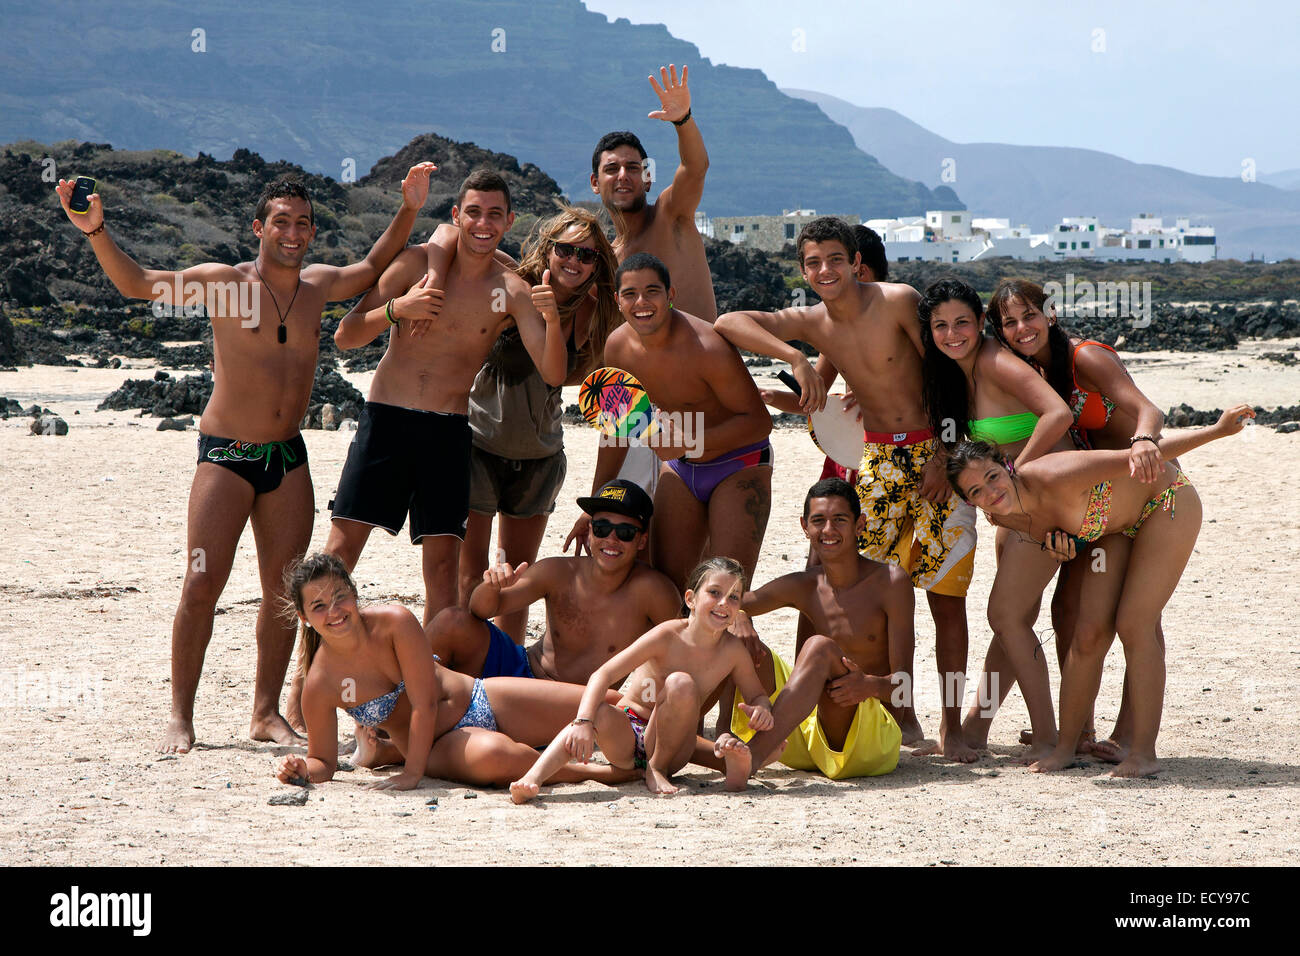 Group Of Young People On The Beach Bajo De Los Sables In Orzola Lanzarote Canary Islands Spain